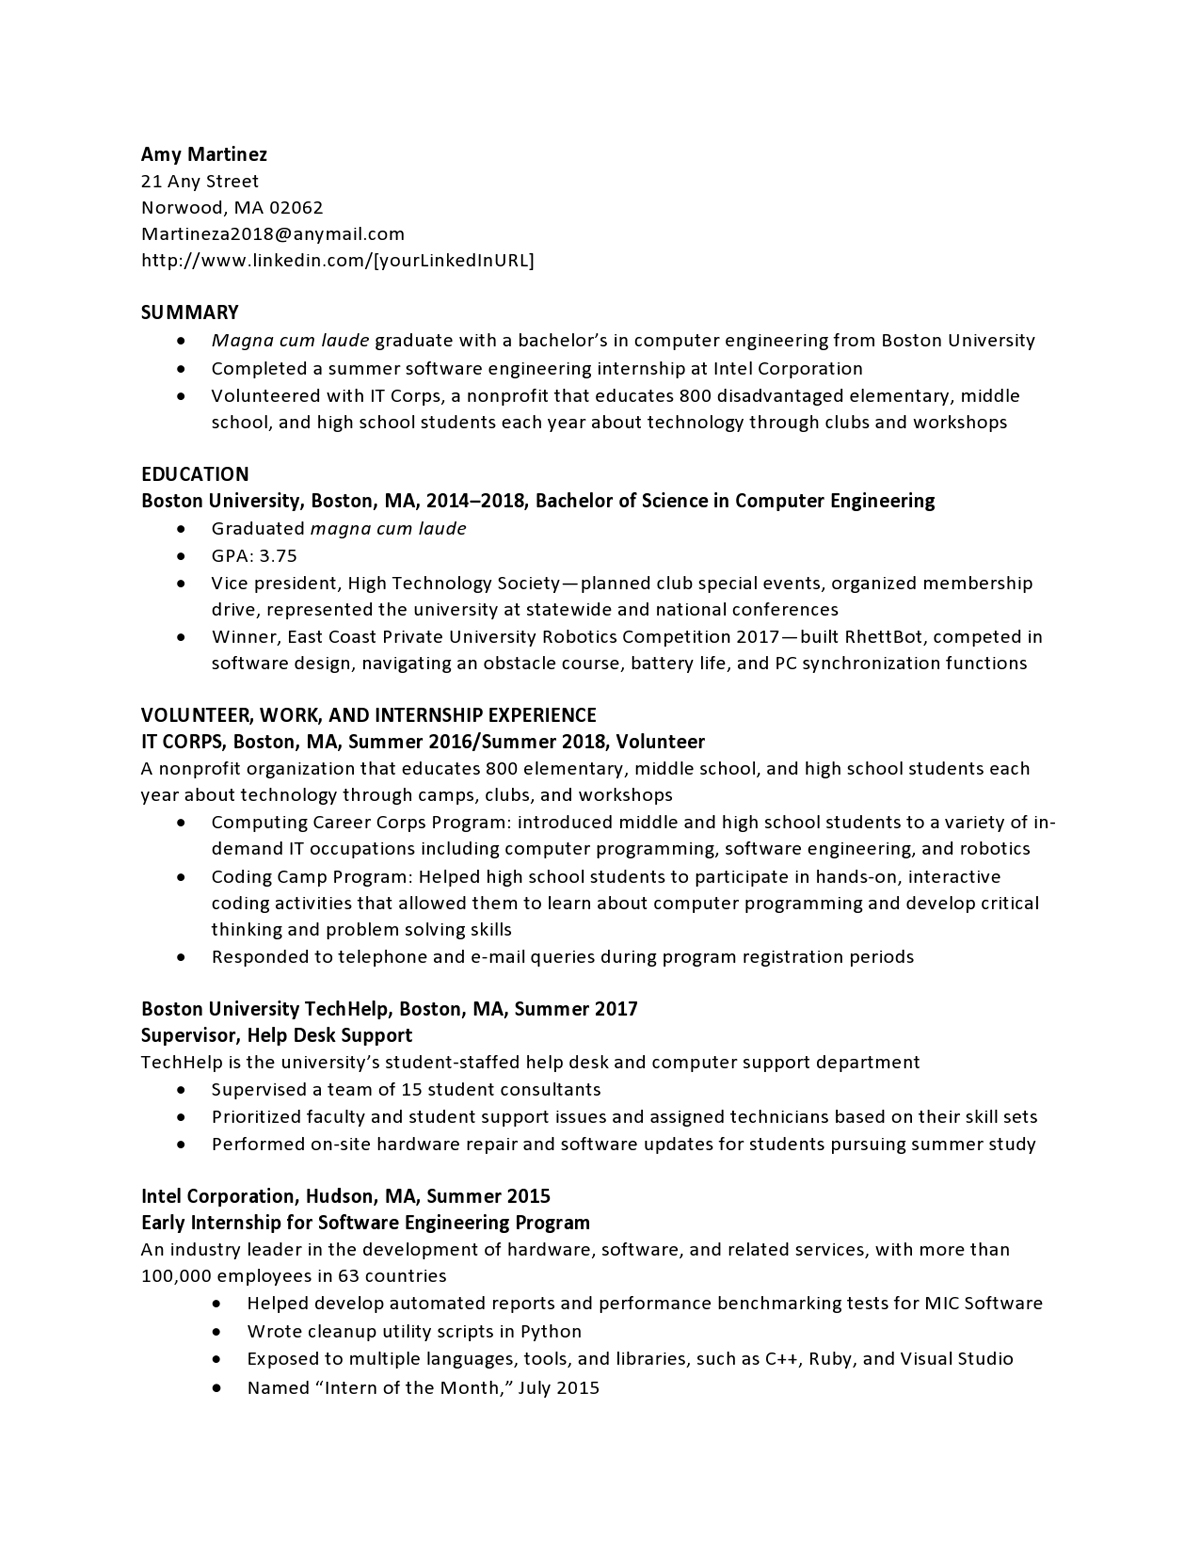 resume samples templates examples vault entry level information technology Resume Entry Level Information Technology Resume Examples